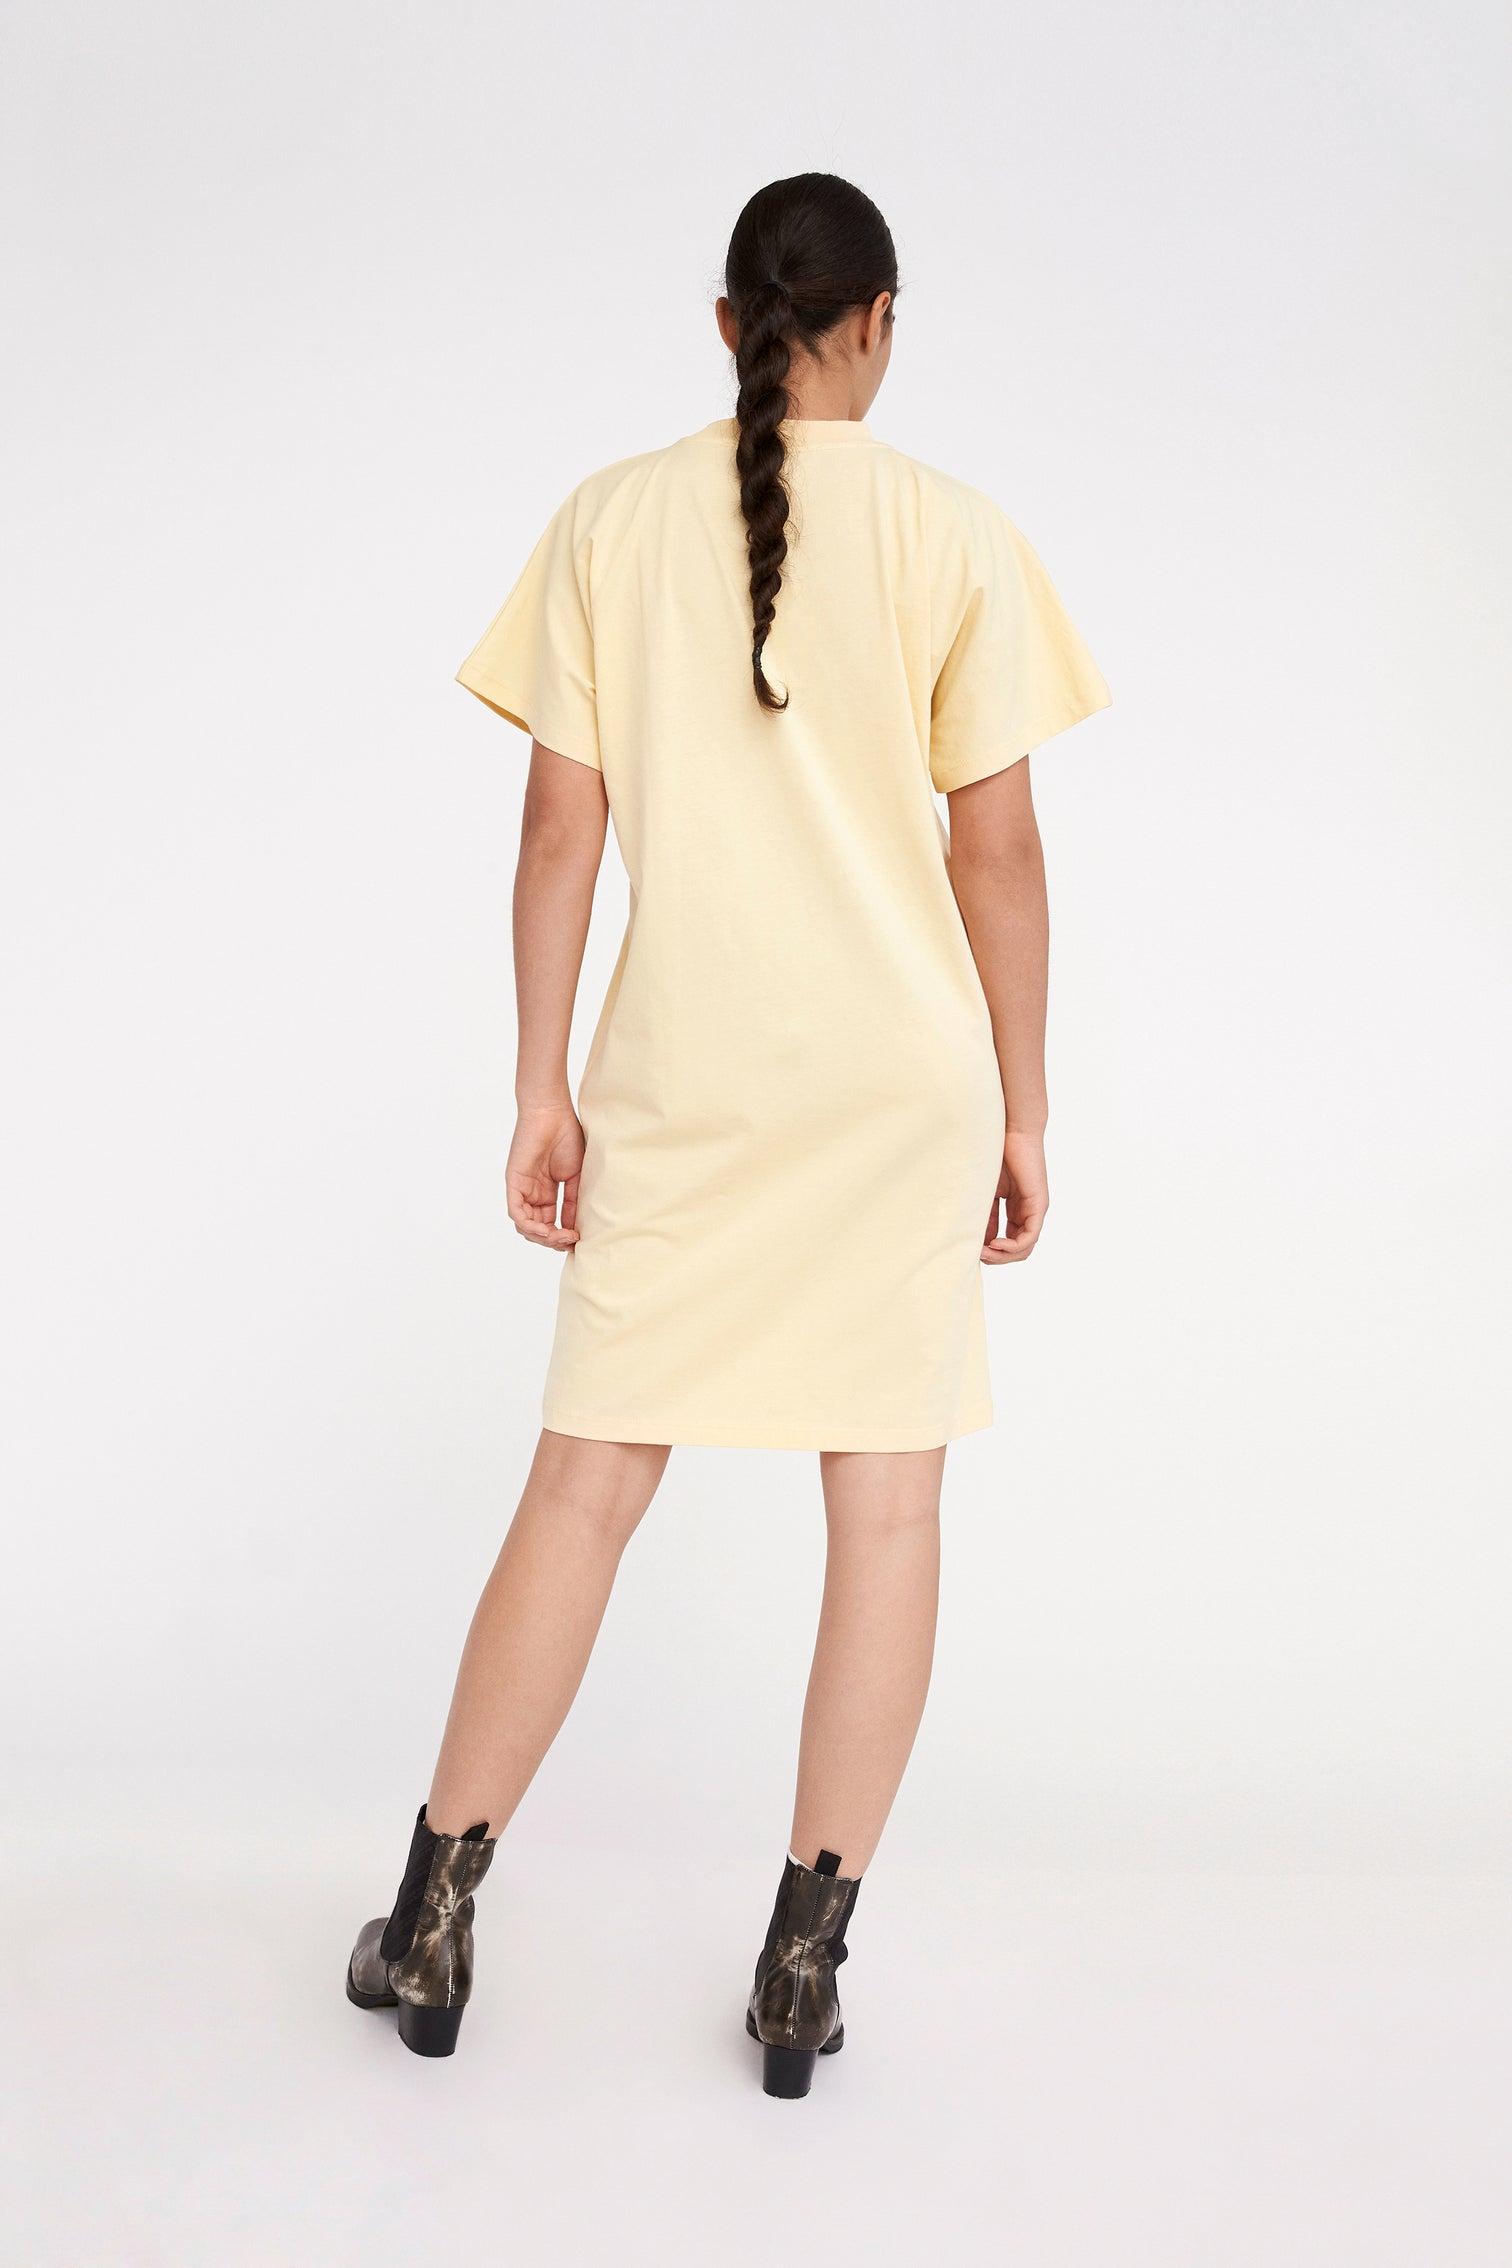 Won Hundred Women Brooklyn Dress Dress Banana Crepe